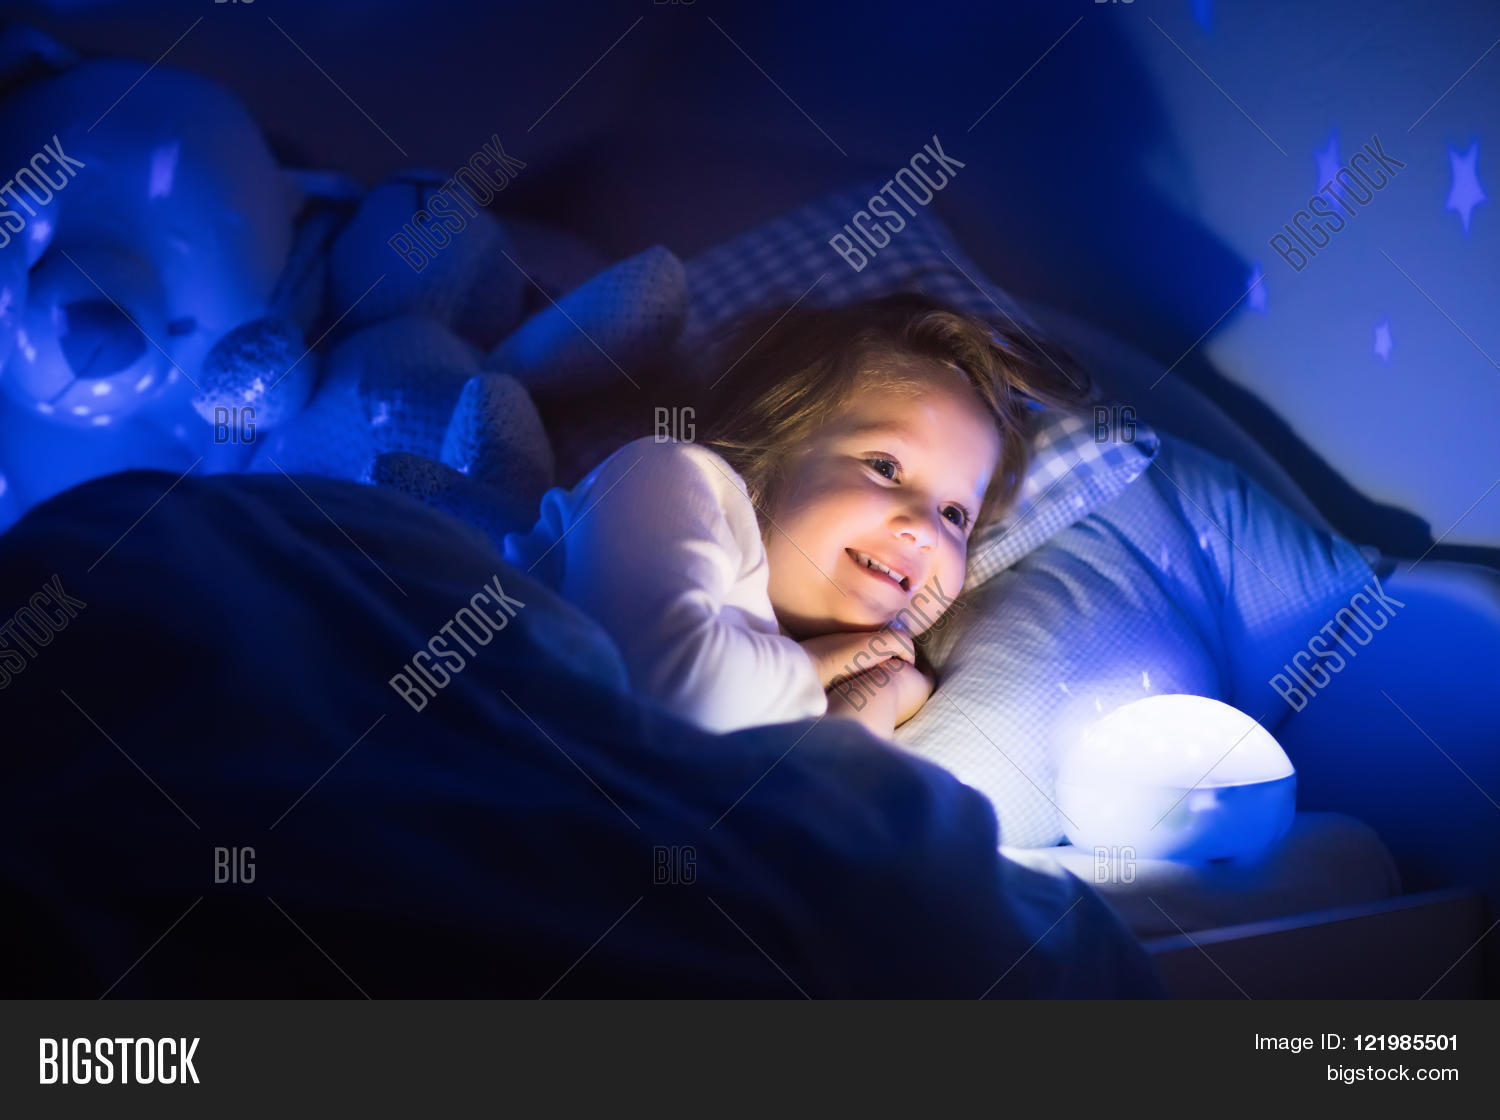 Girl Night Lights Little Girl Reading Image Photo Free Trial Bigstock